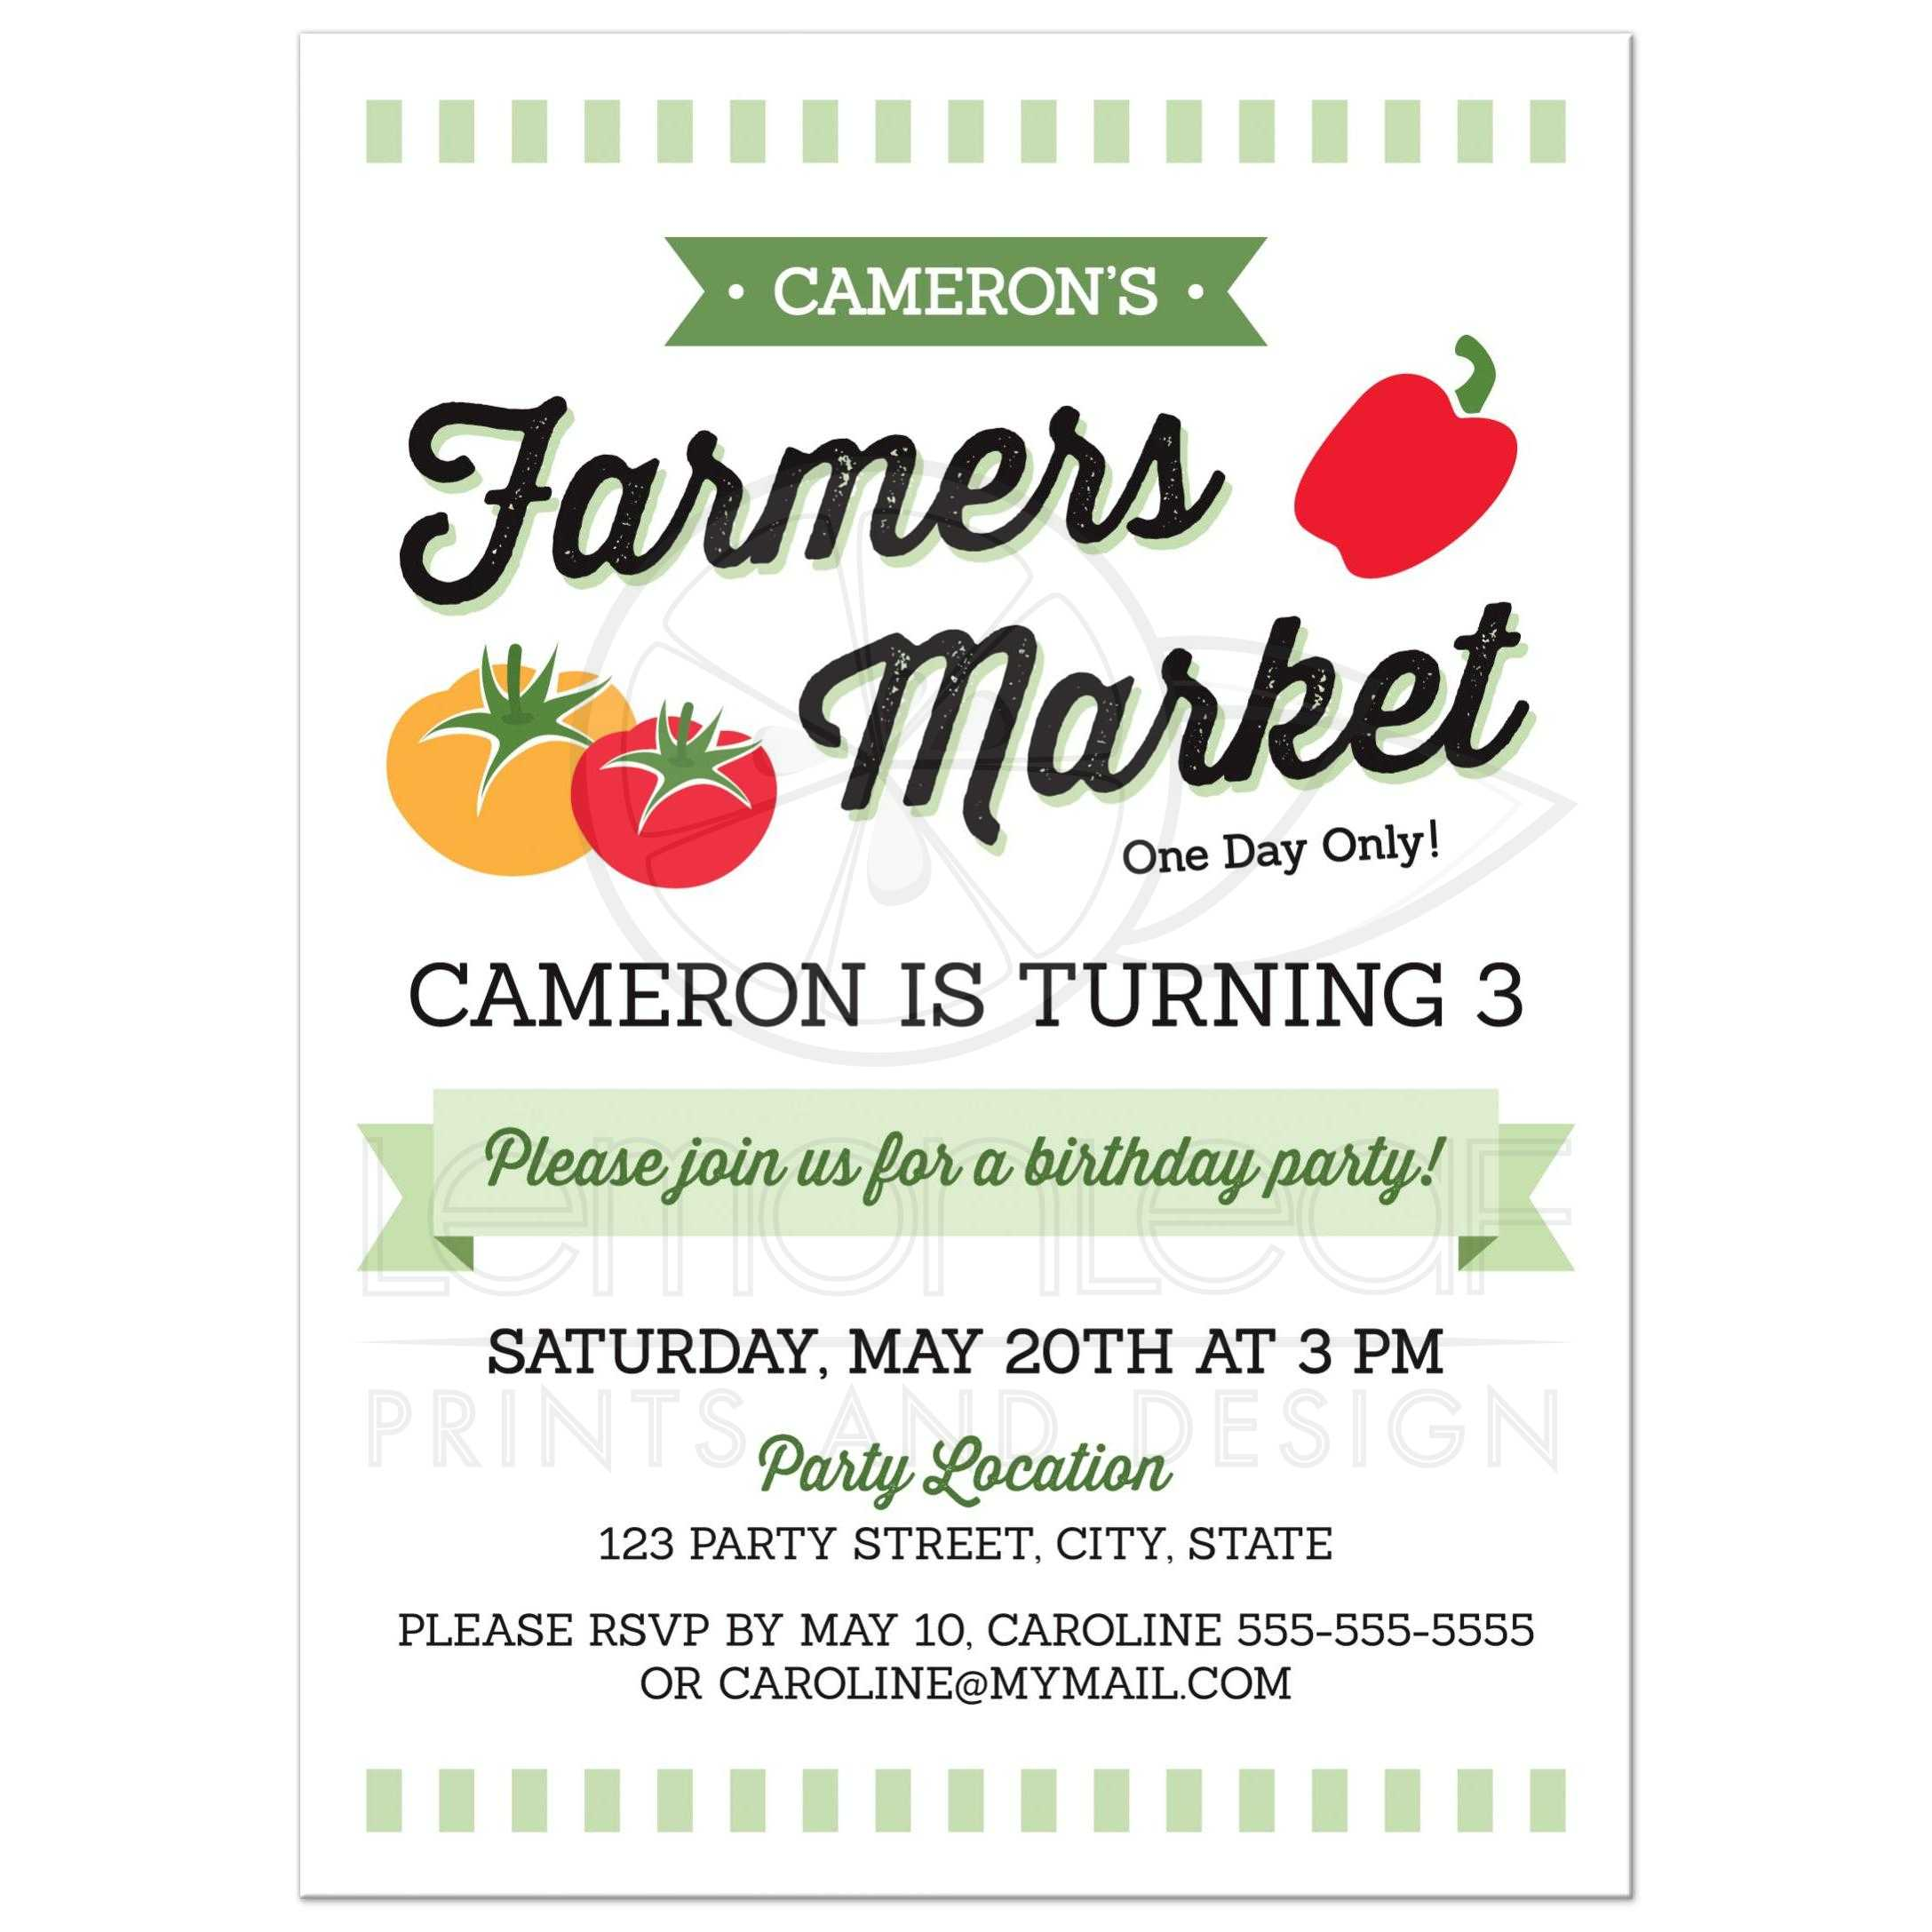 Farmers Market Birthday Invitation With Tomatoes And Red